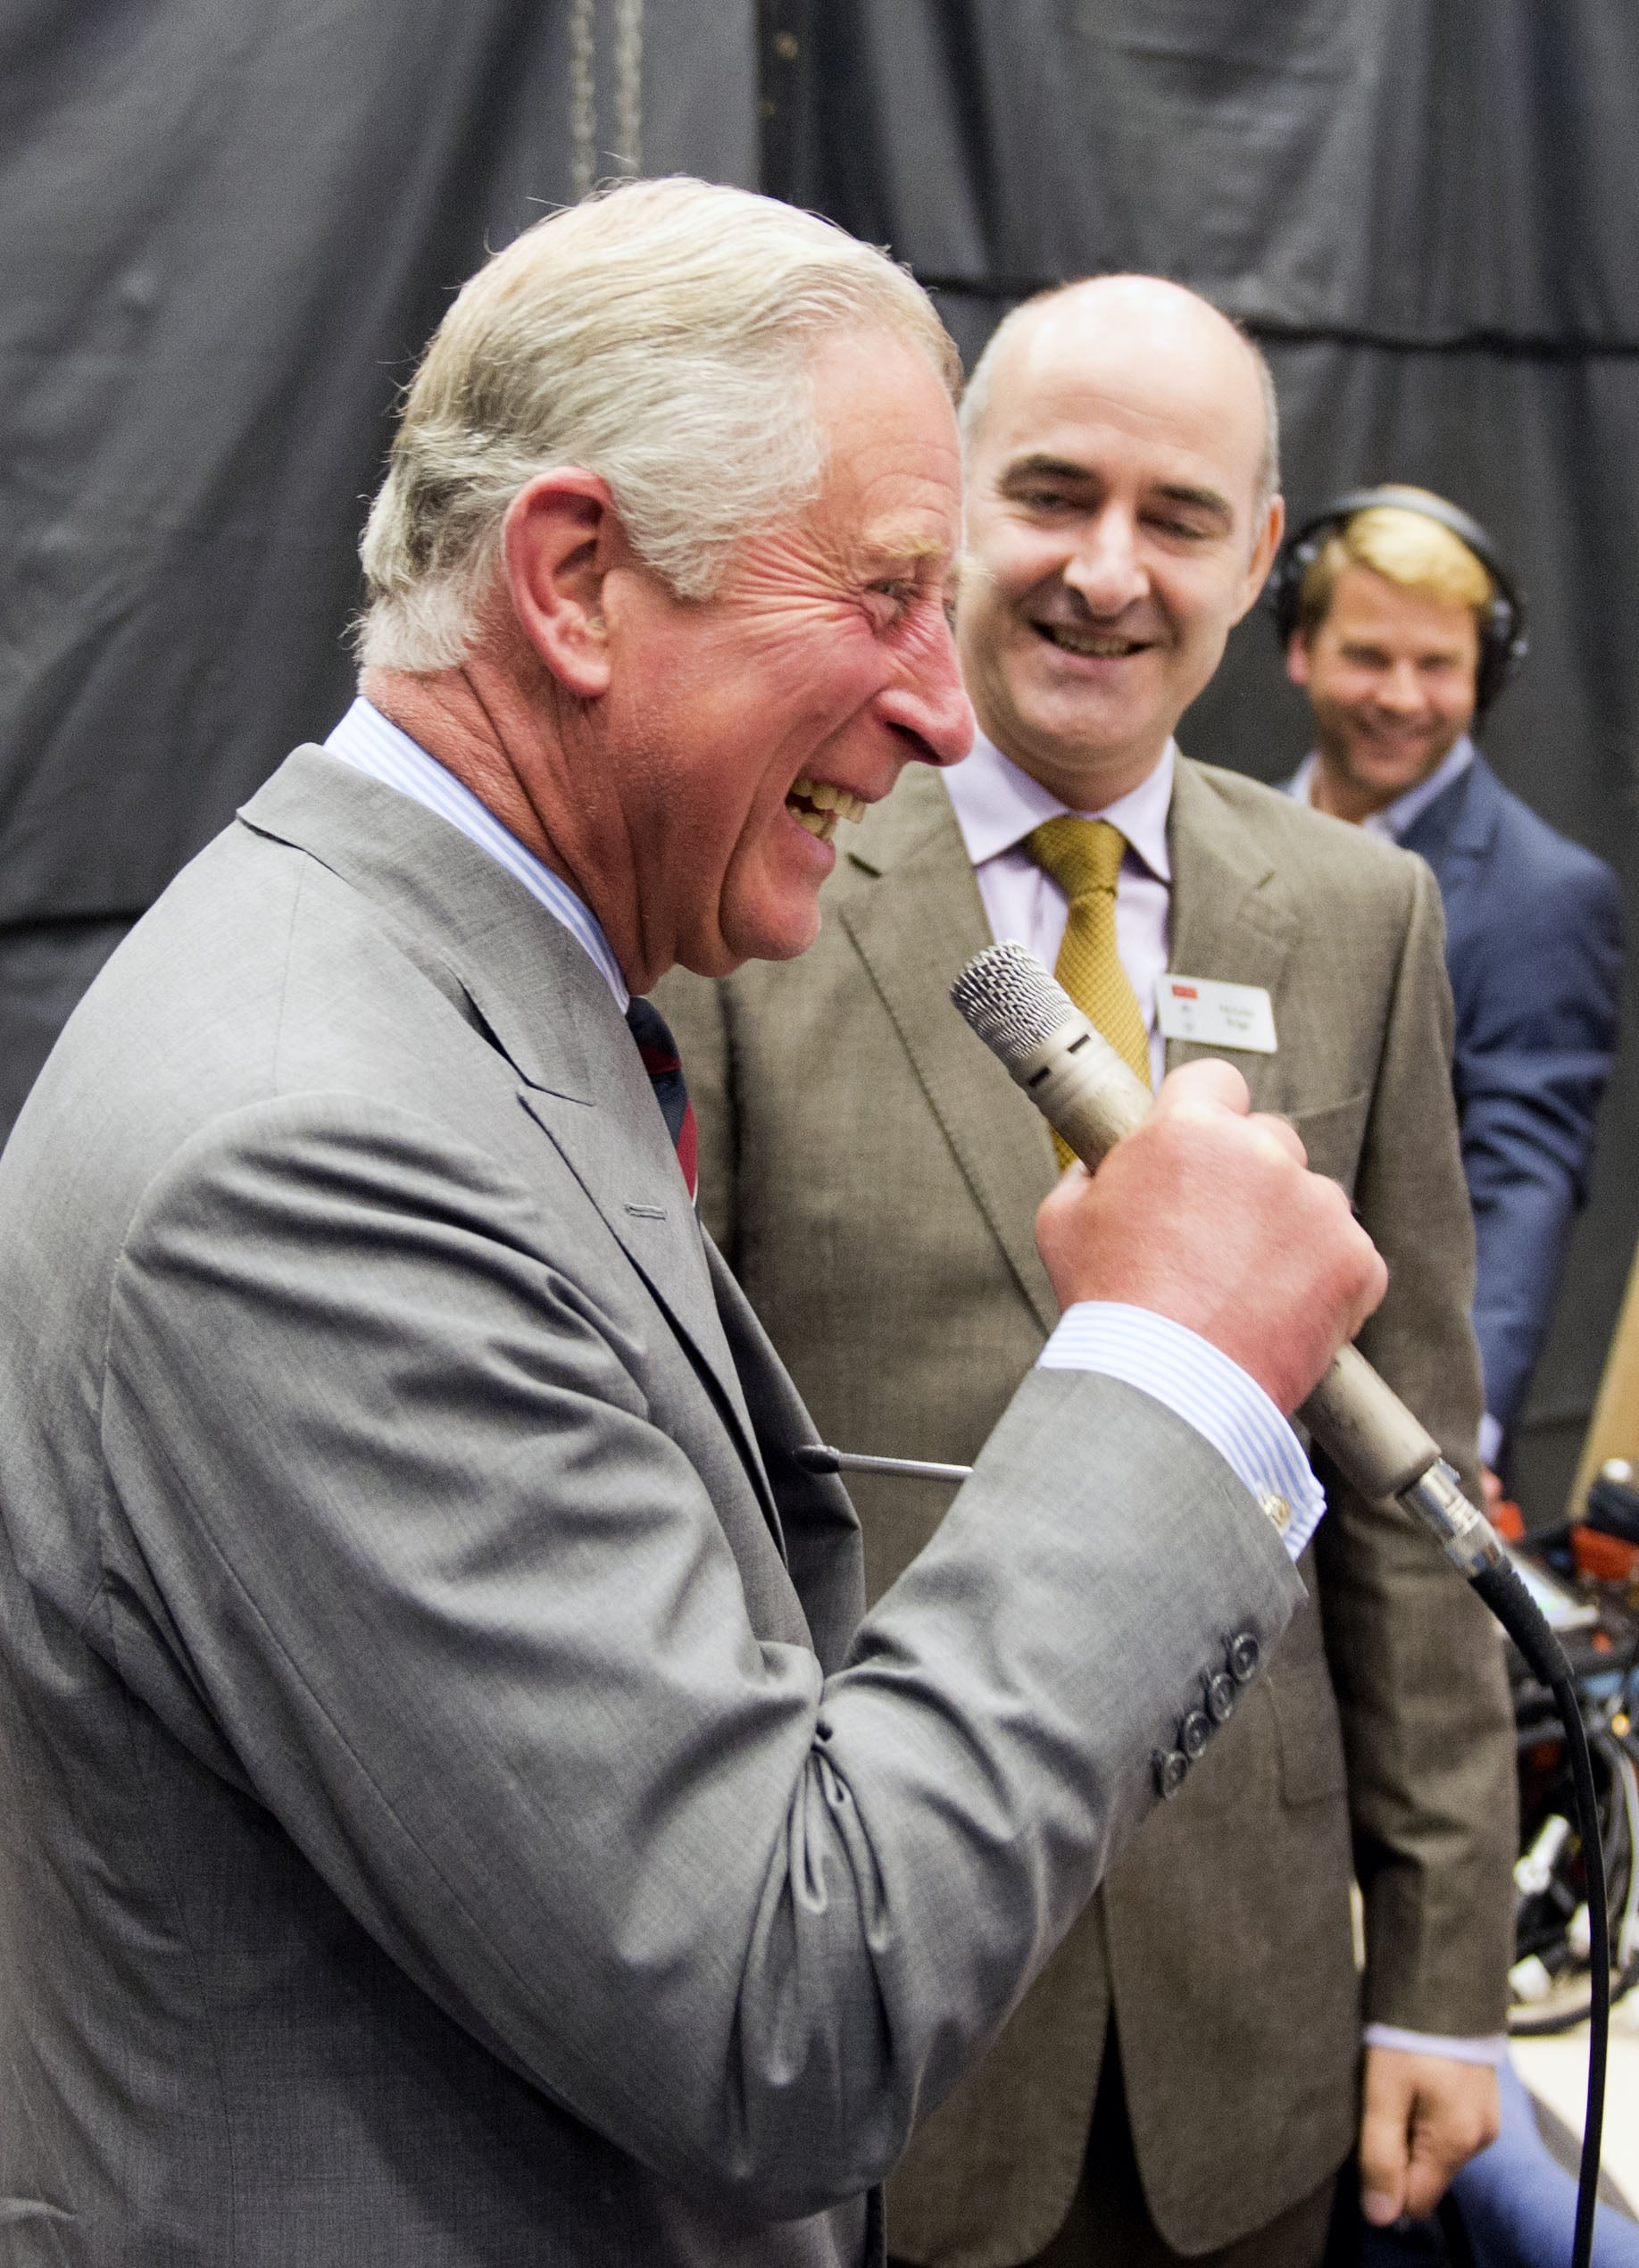 """Nicholas Briggs, the voice of the Daleks, tutored Prince Charles on the proper way to say """"Exterminate!"""""""